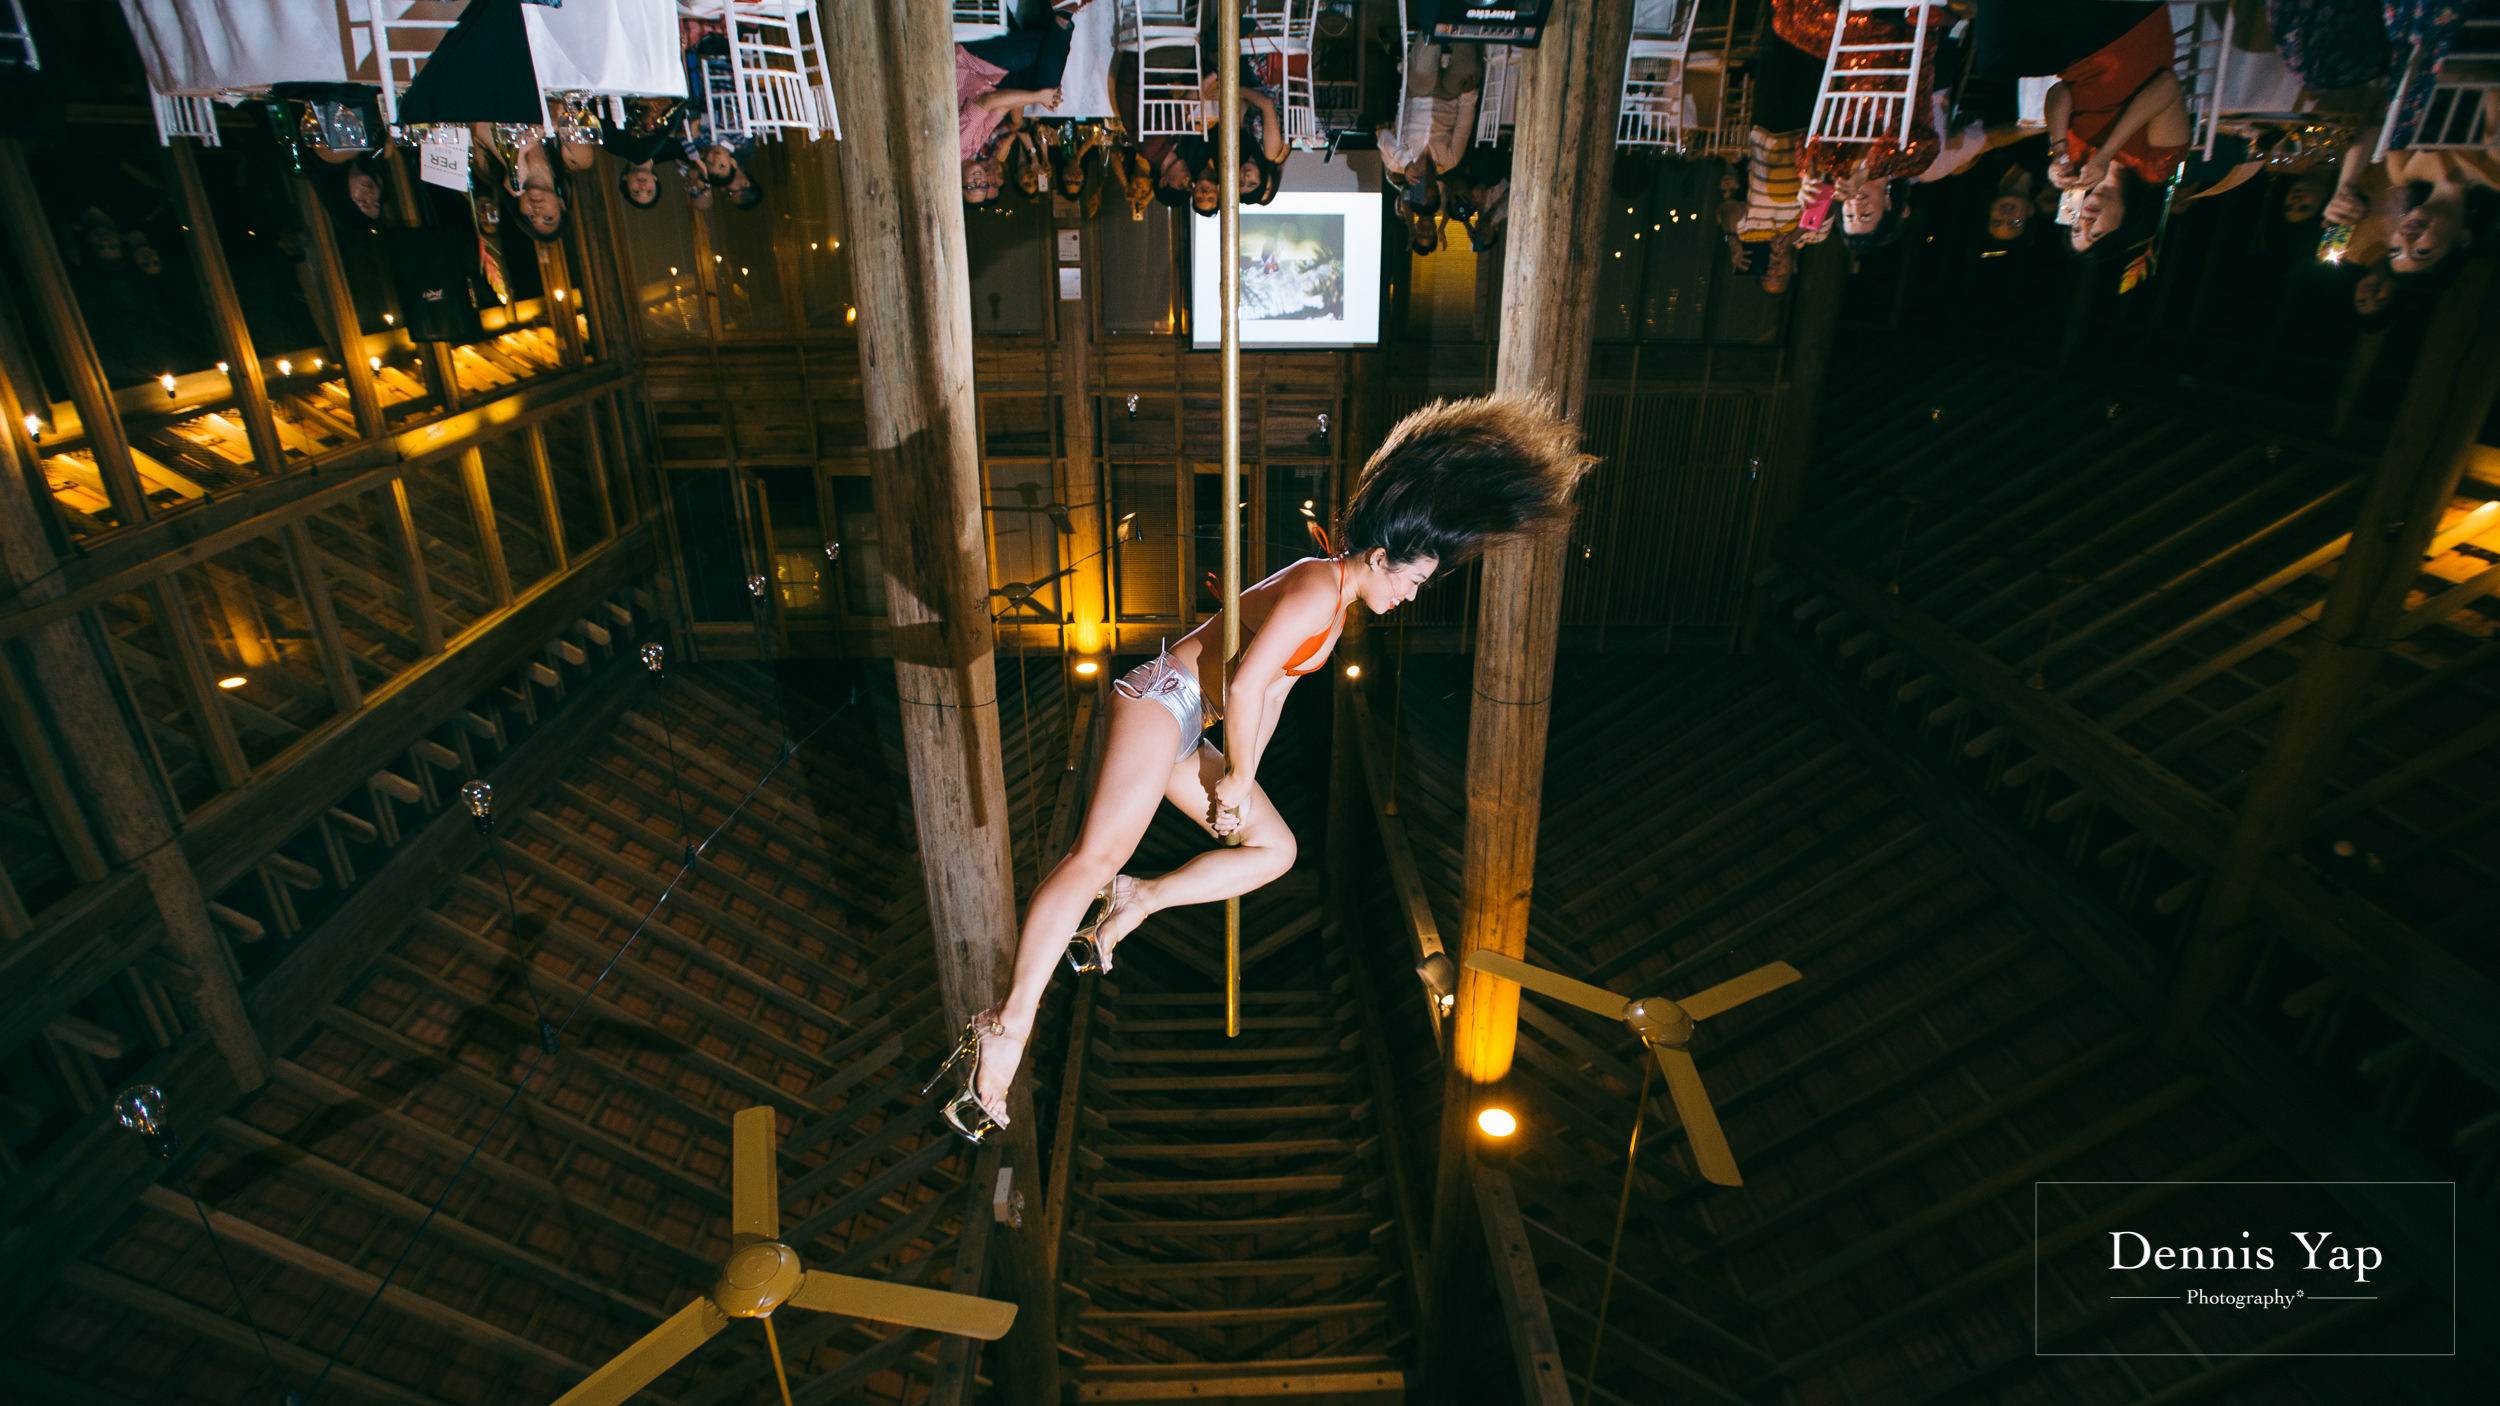 jung munn yein wedding day janda baik endarong dennis yap photography pole dancing malaysia-22.jpg